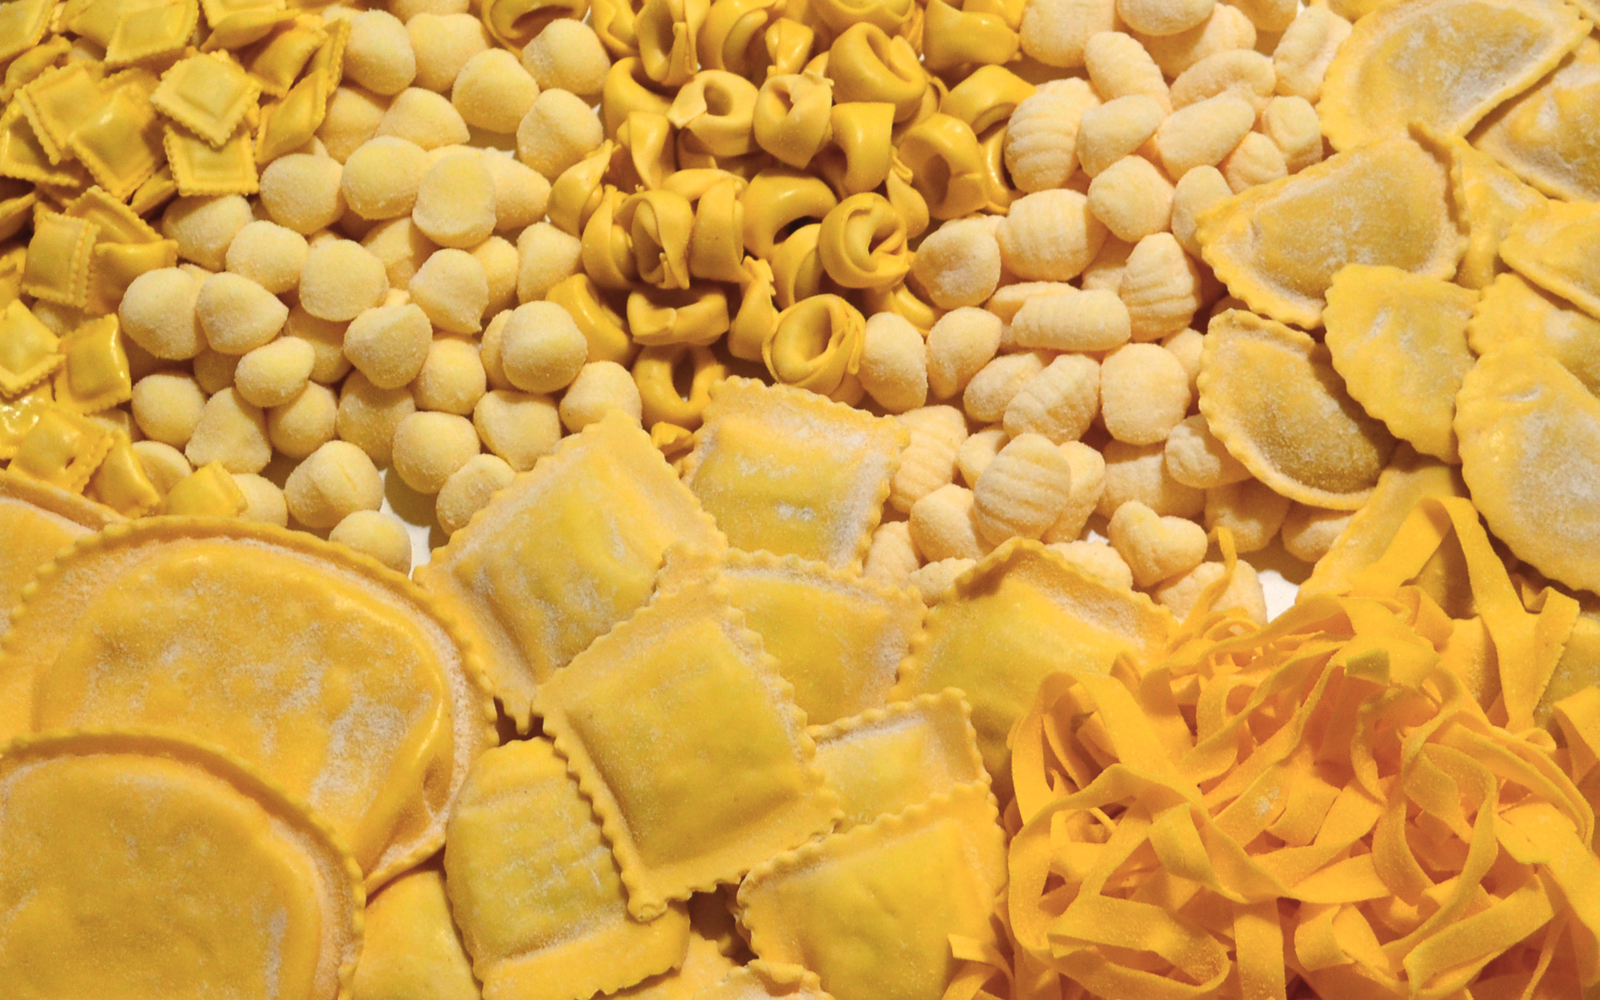 pasta-fresca-ripiena-livorno-mercato-centrale-vettovaglie-pastificio-chiesa